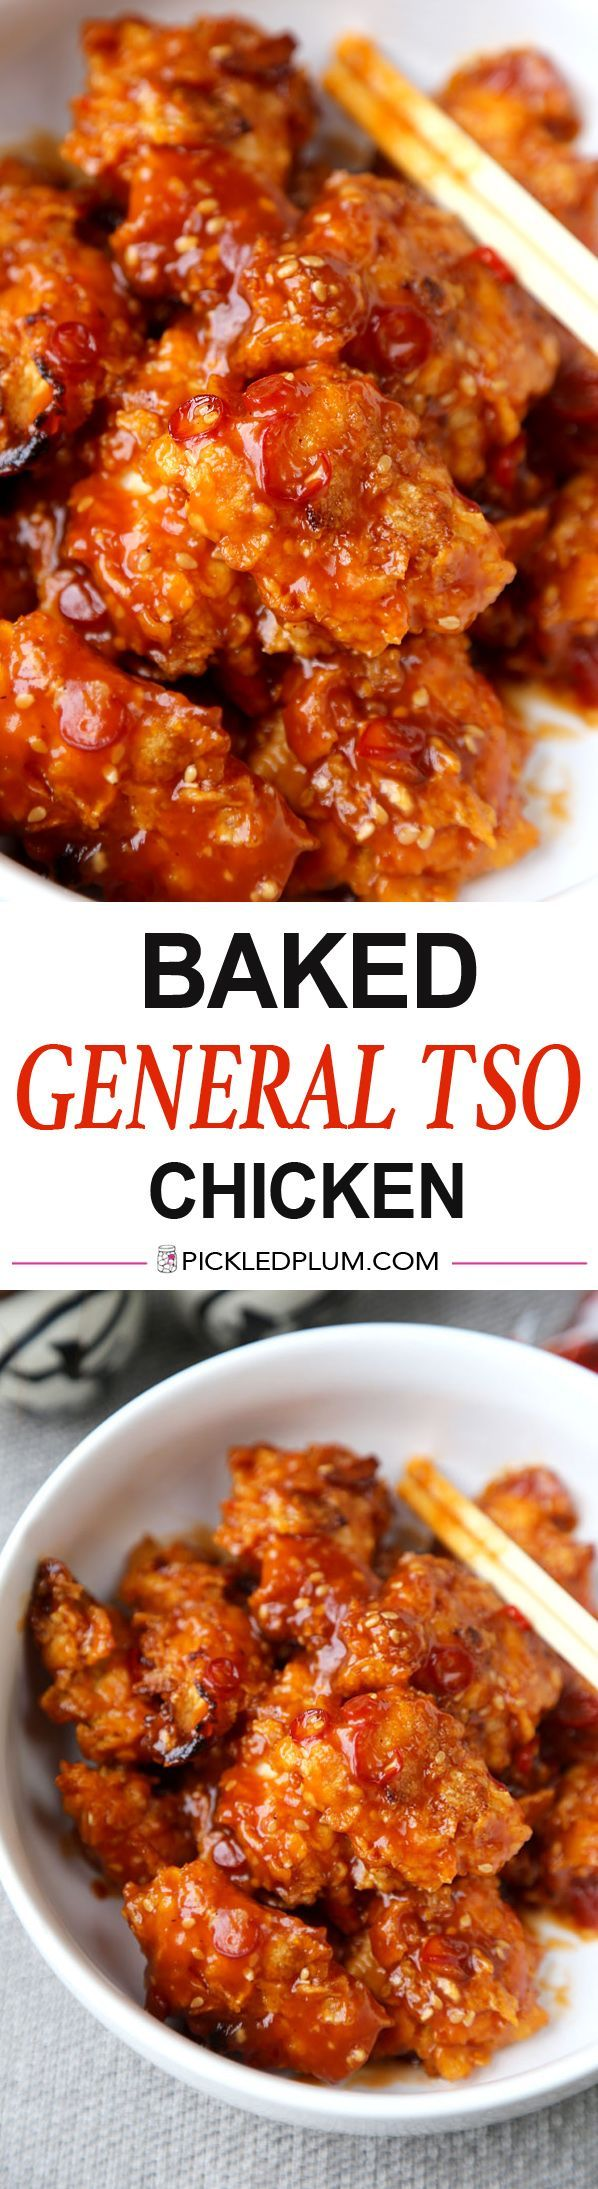 Baked General Tso Chicken Recipe – Crushed Cornflakes imitate fried chicken so well you'll forget you are